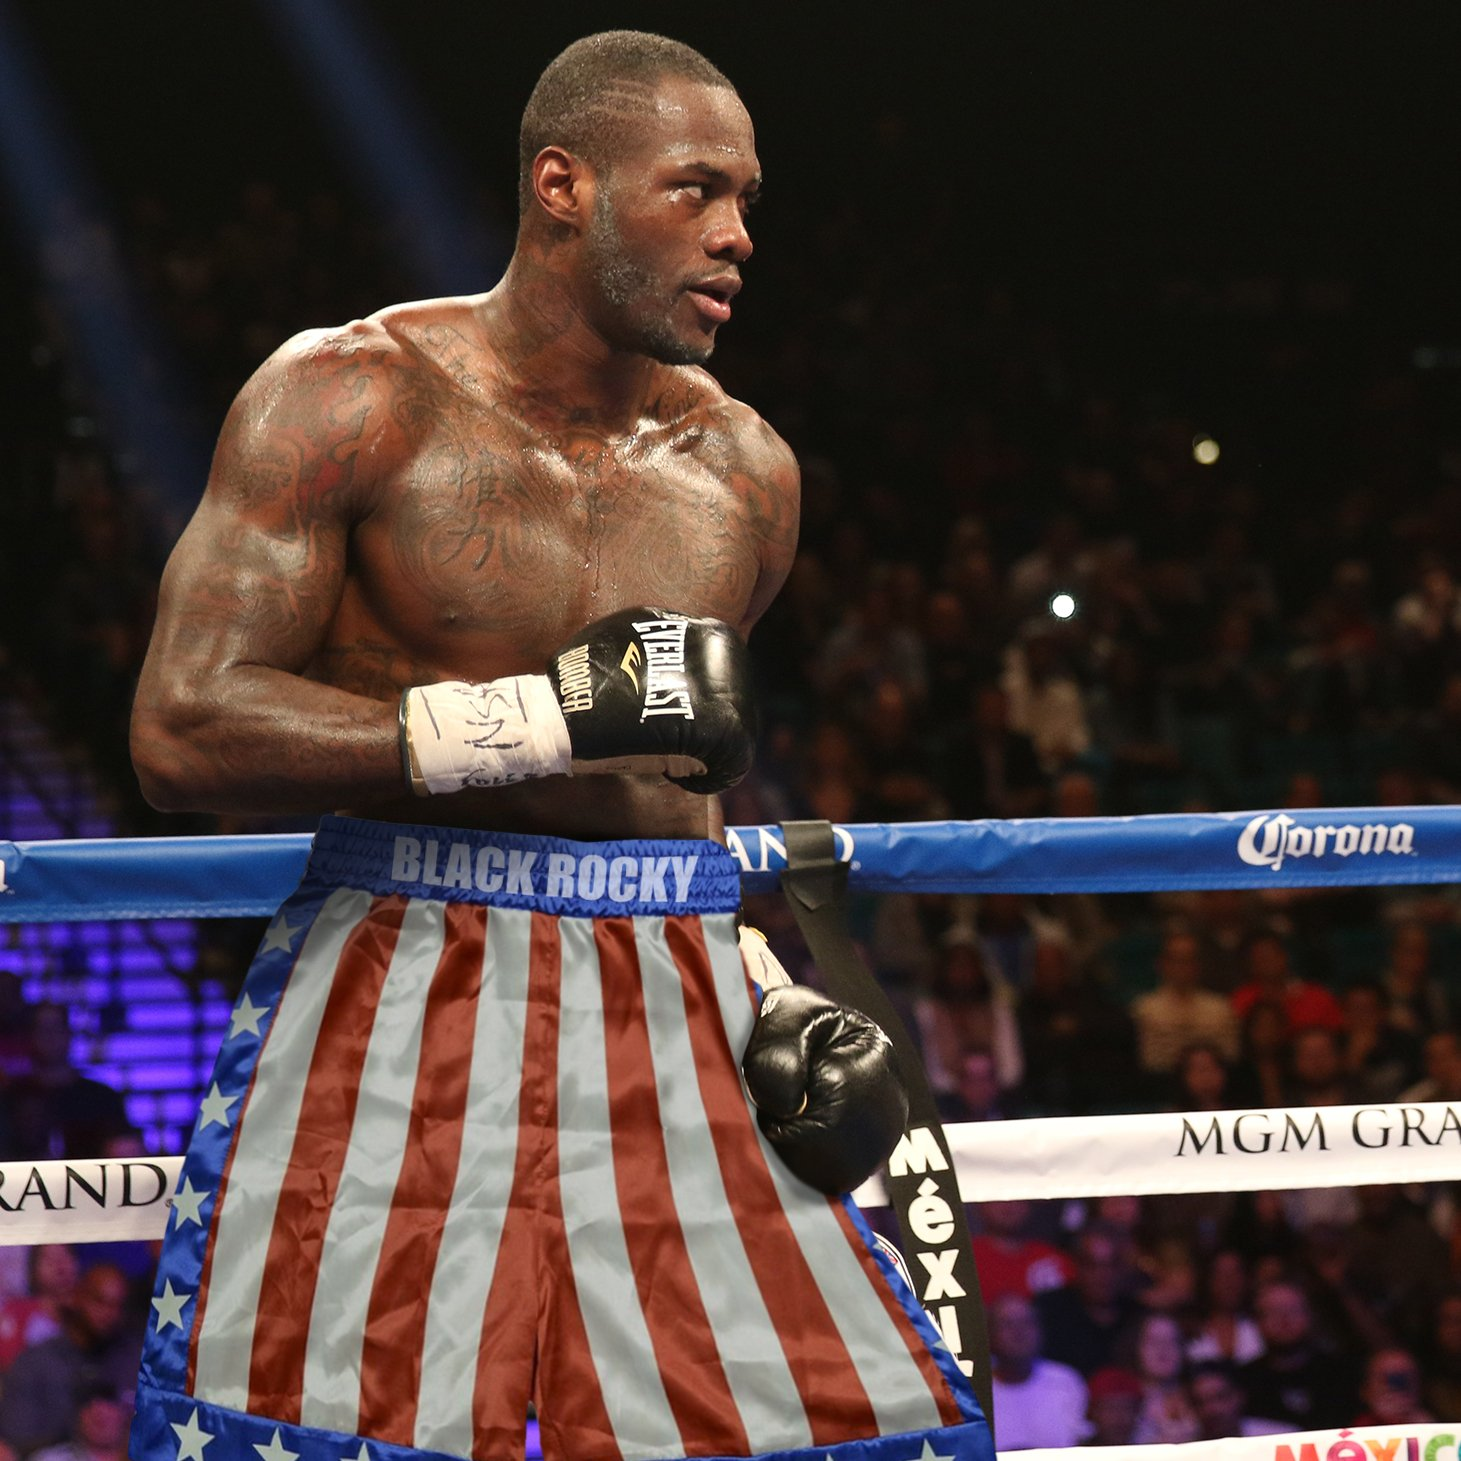 Deontay Wilder On Twitter To Beat Me He Will Have To